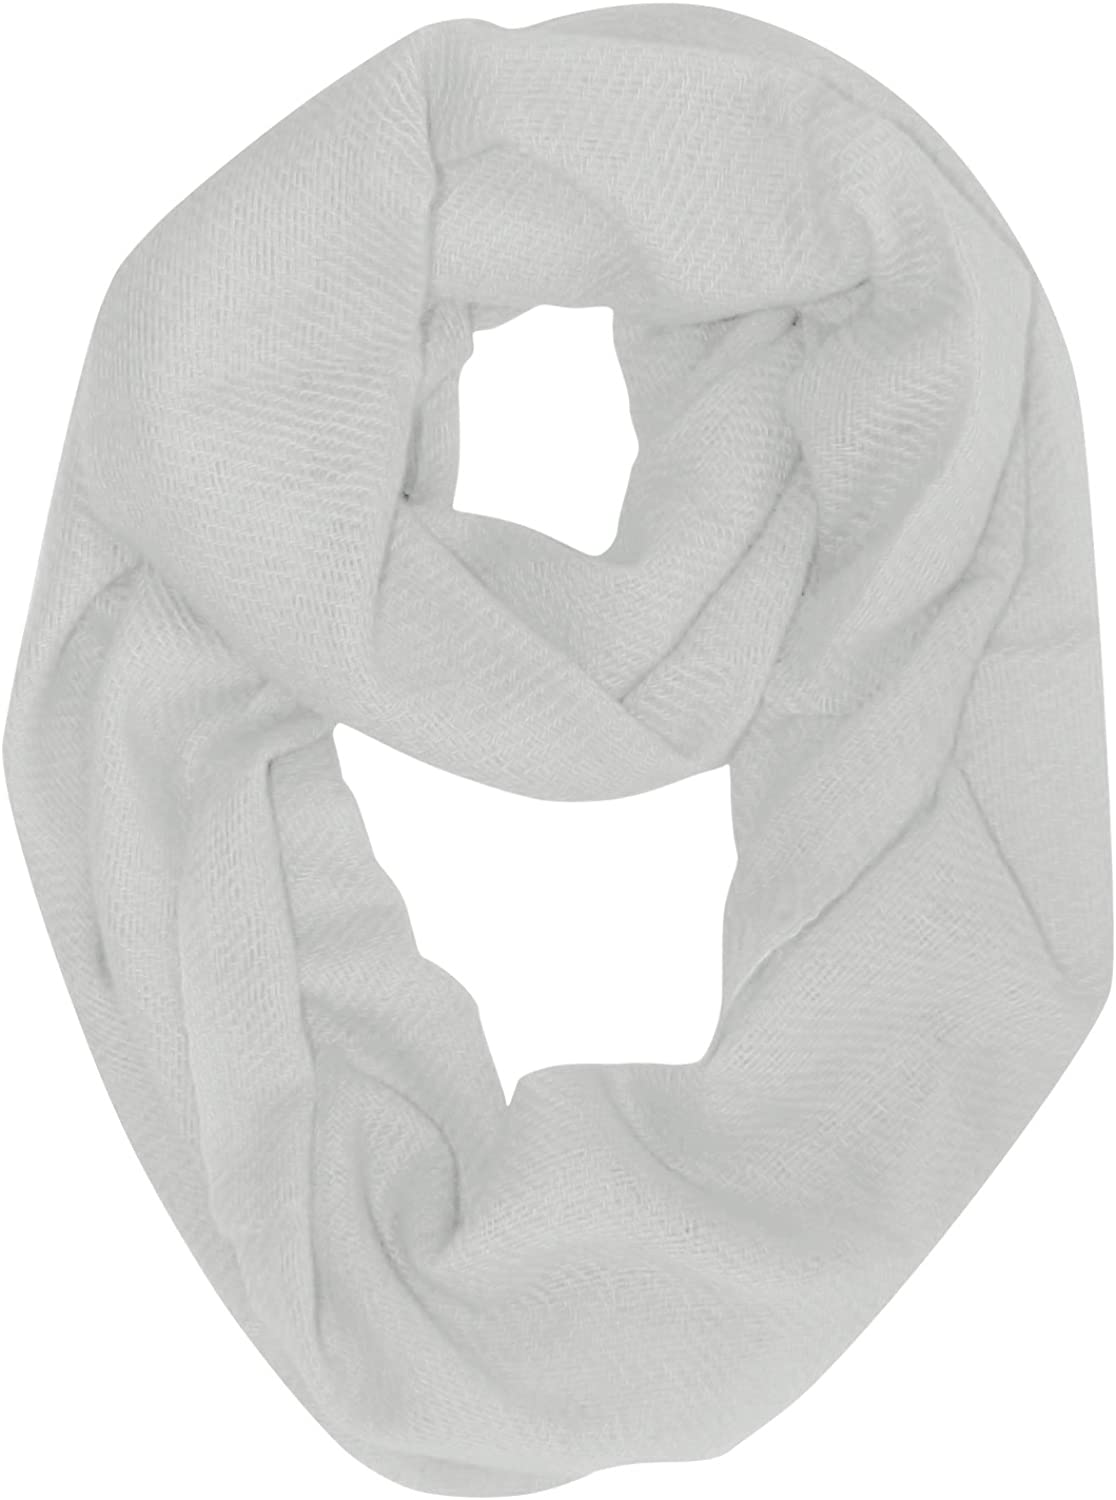 Peach Couture Light and Soft Luxurious Cashmere Wool Infinity Loop Wrap Scarf